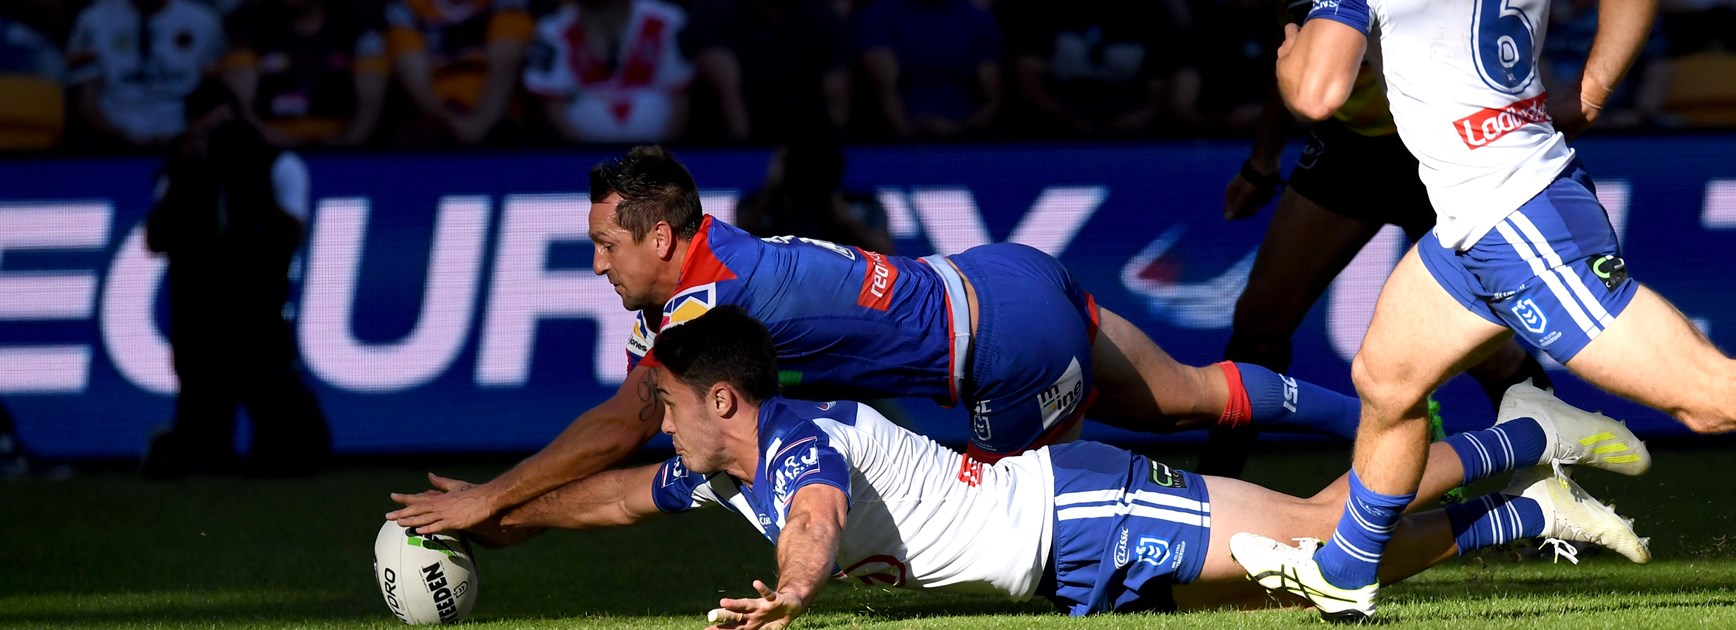 Dally M voting tracker: Pearce makes Dally M dash